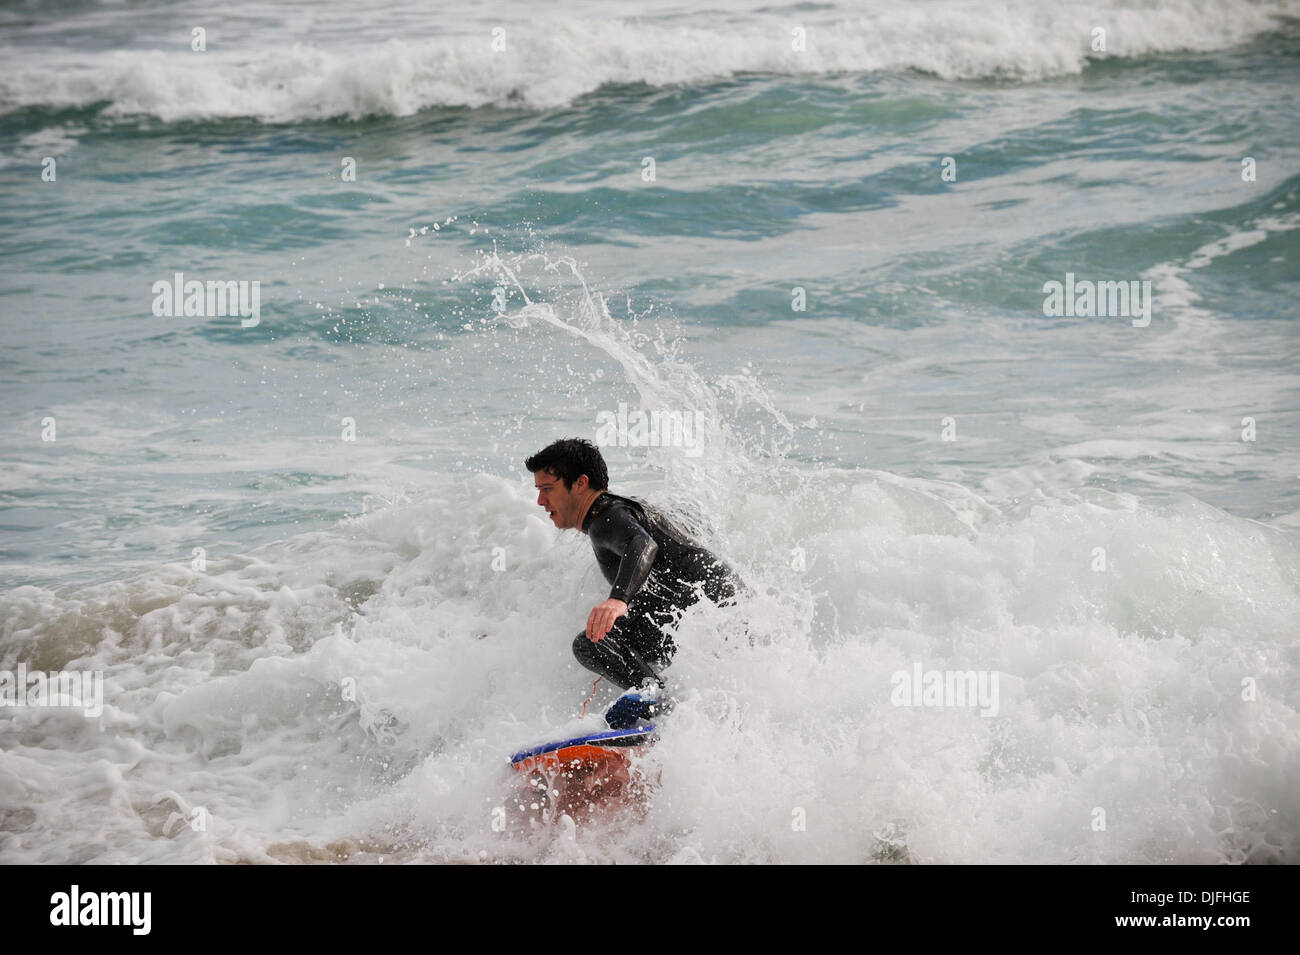 June 13, 2010 - Cape Town, SOUTH AFRICA - A body boarder rides the waves in the Camps Bay suburb of Cape Town Sunday, June 13, 2010 in South Africa. (Credit Image: © Mark Sobhani/ZUMApress.com) Stock Photo